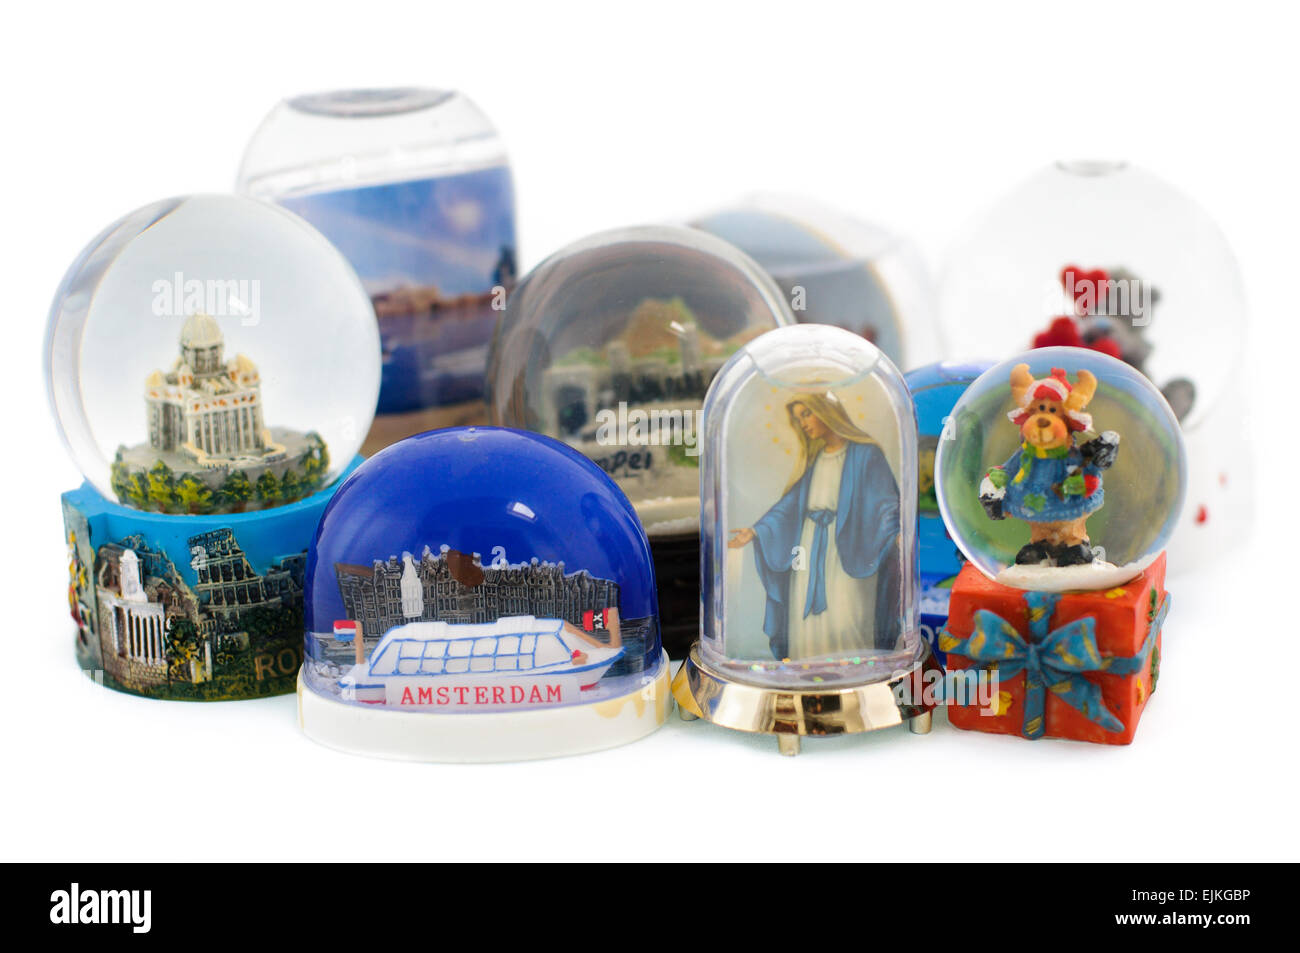 Snowglobe souvenirs from various destinations Stock Photo